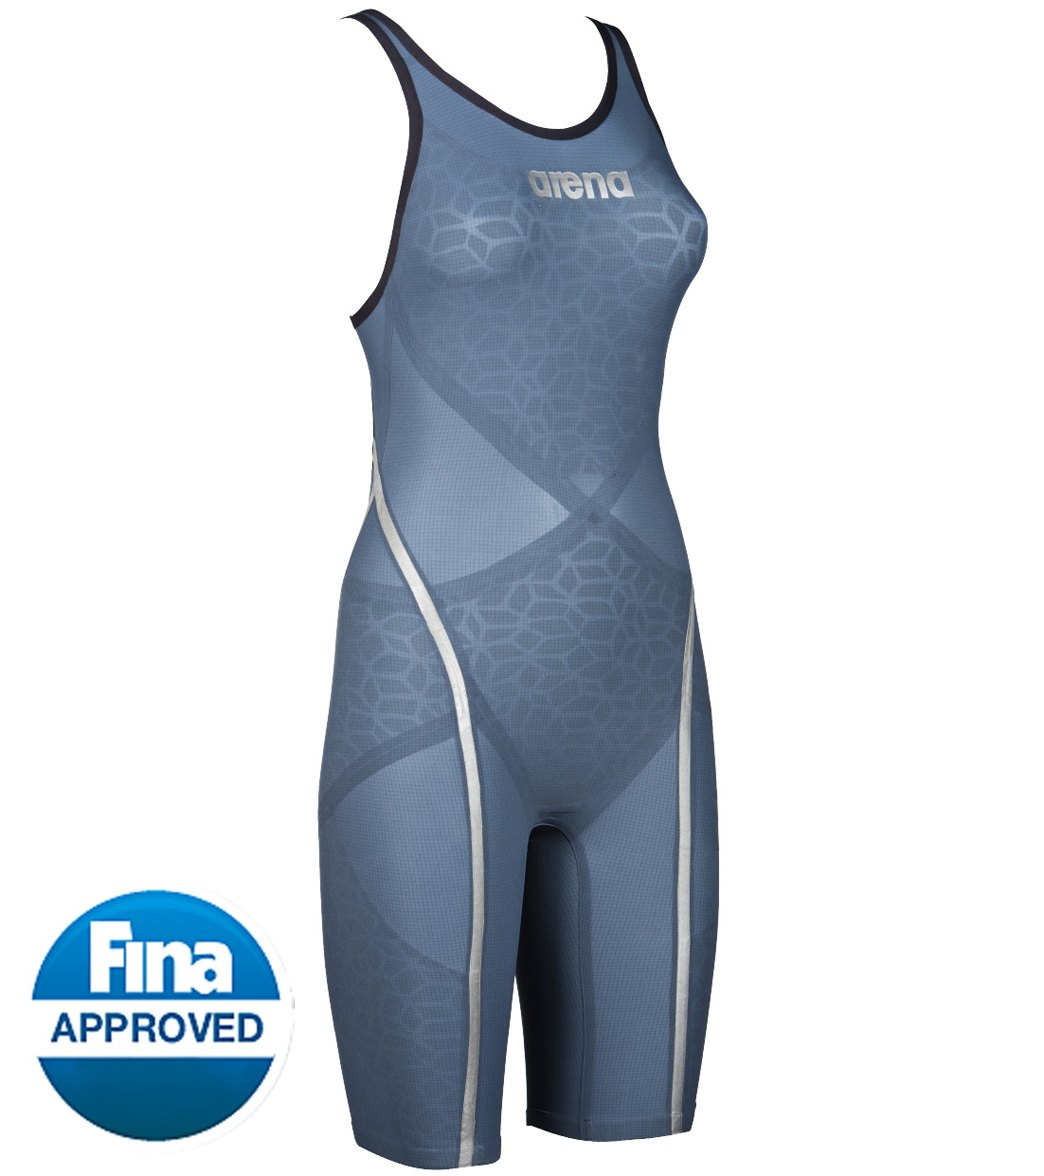 Arena Powerskin Carbon Ultra Open Back Tech Suit- Female